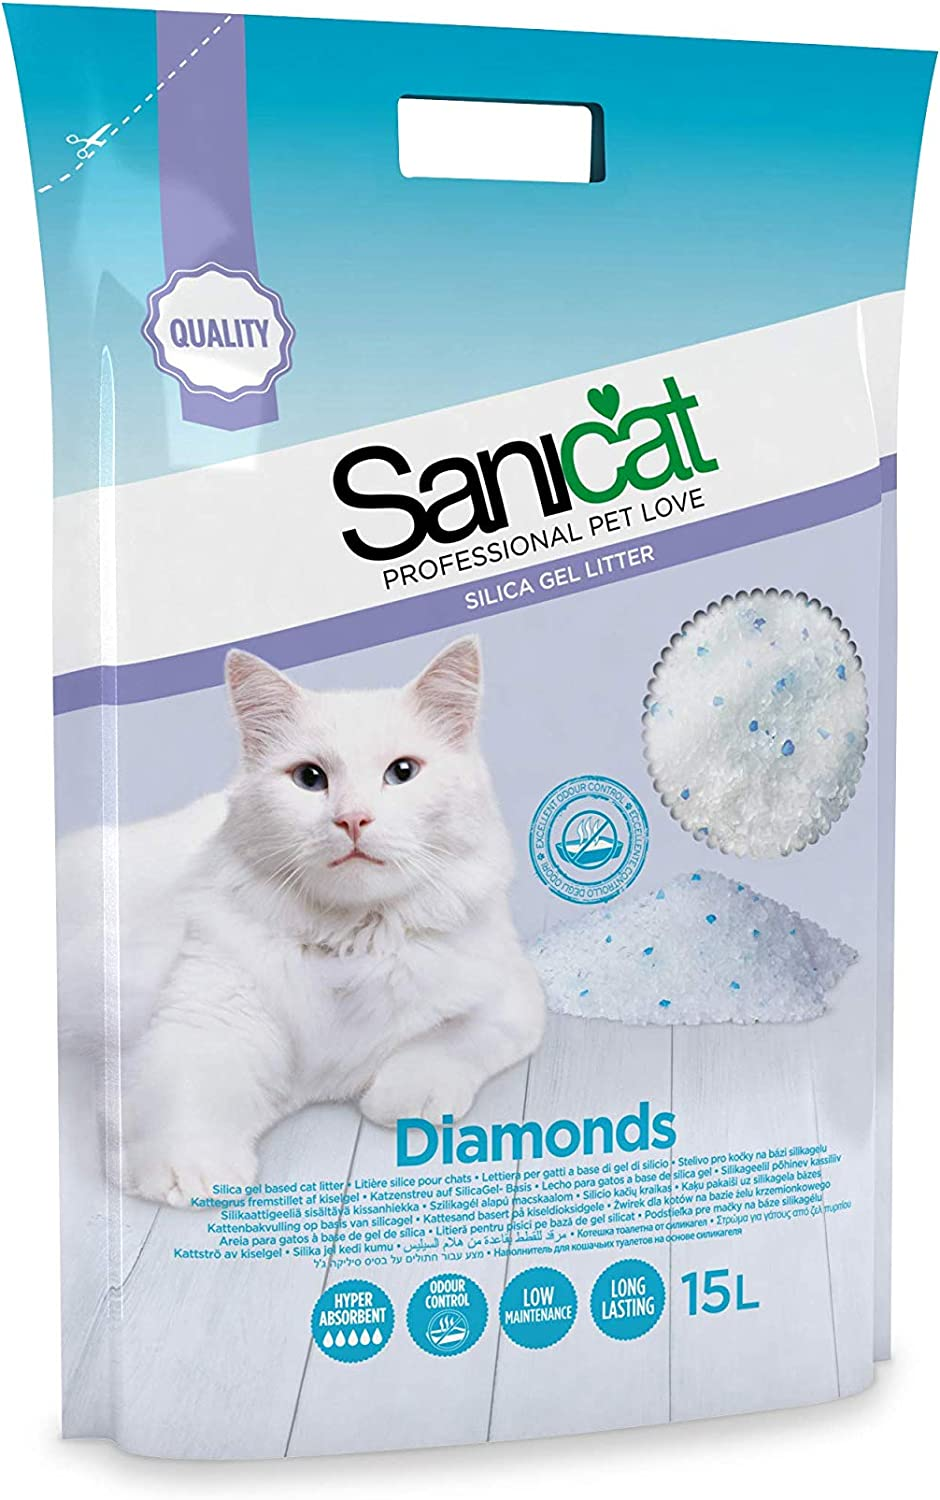 Sanicat Diamonds 15L